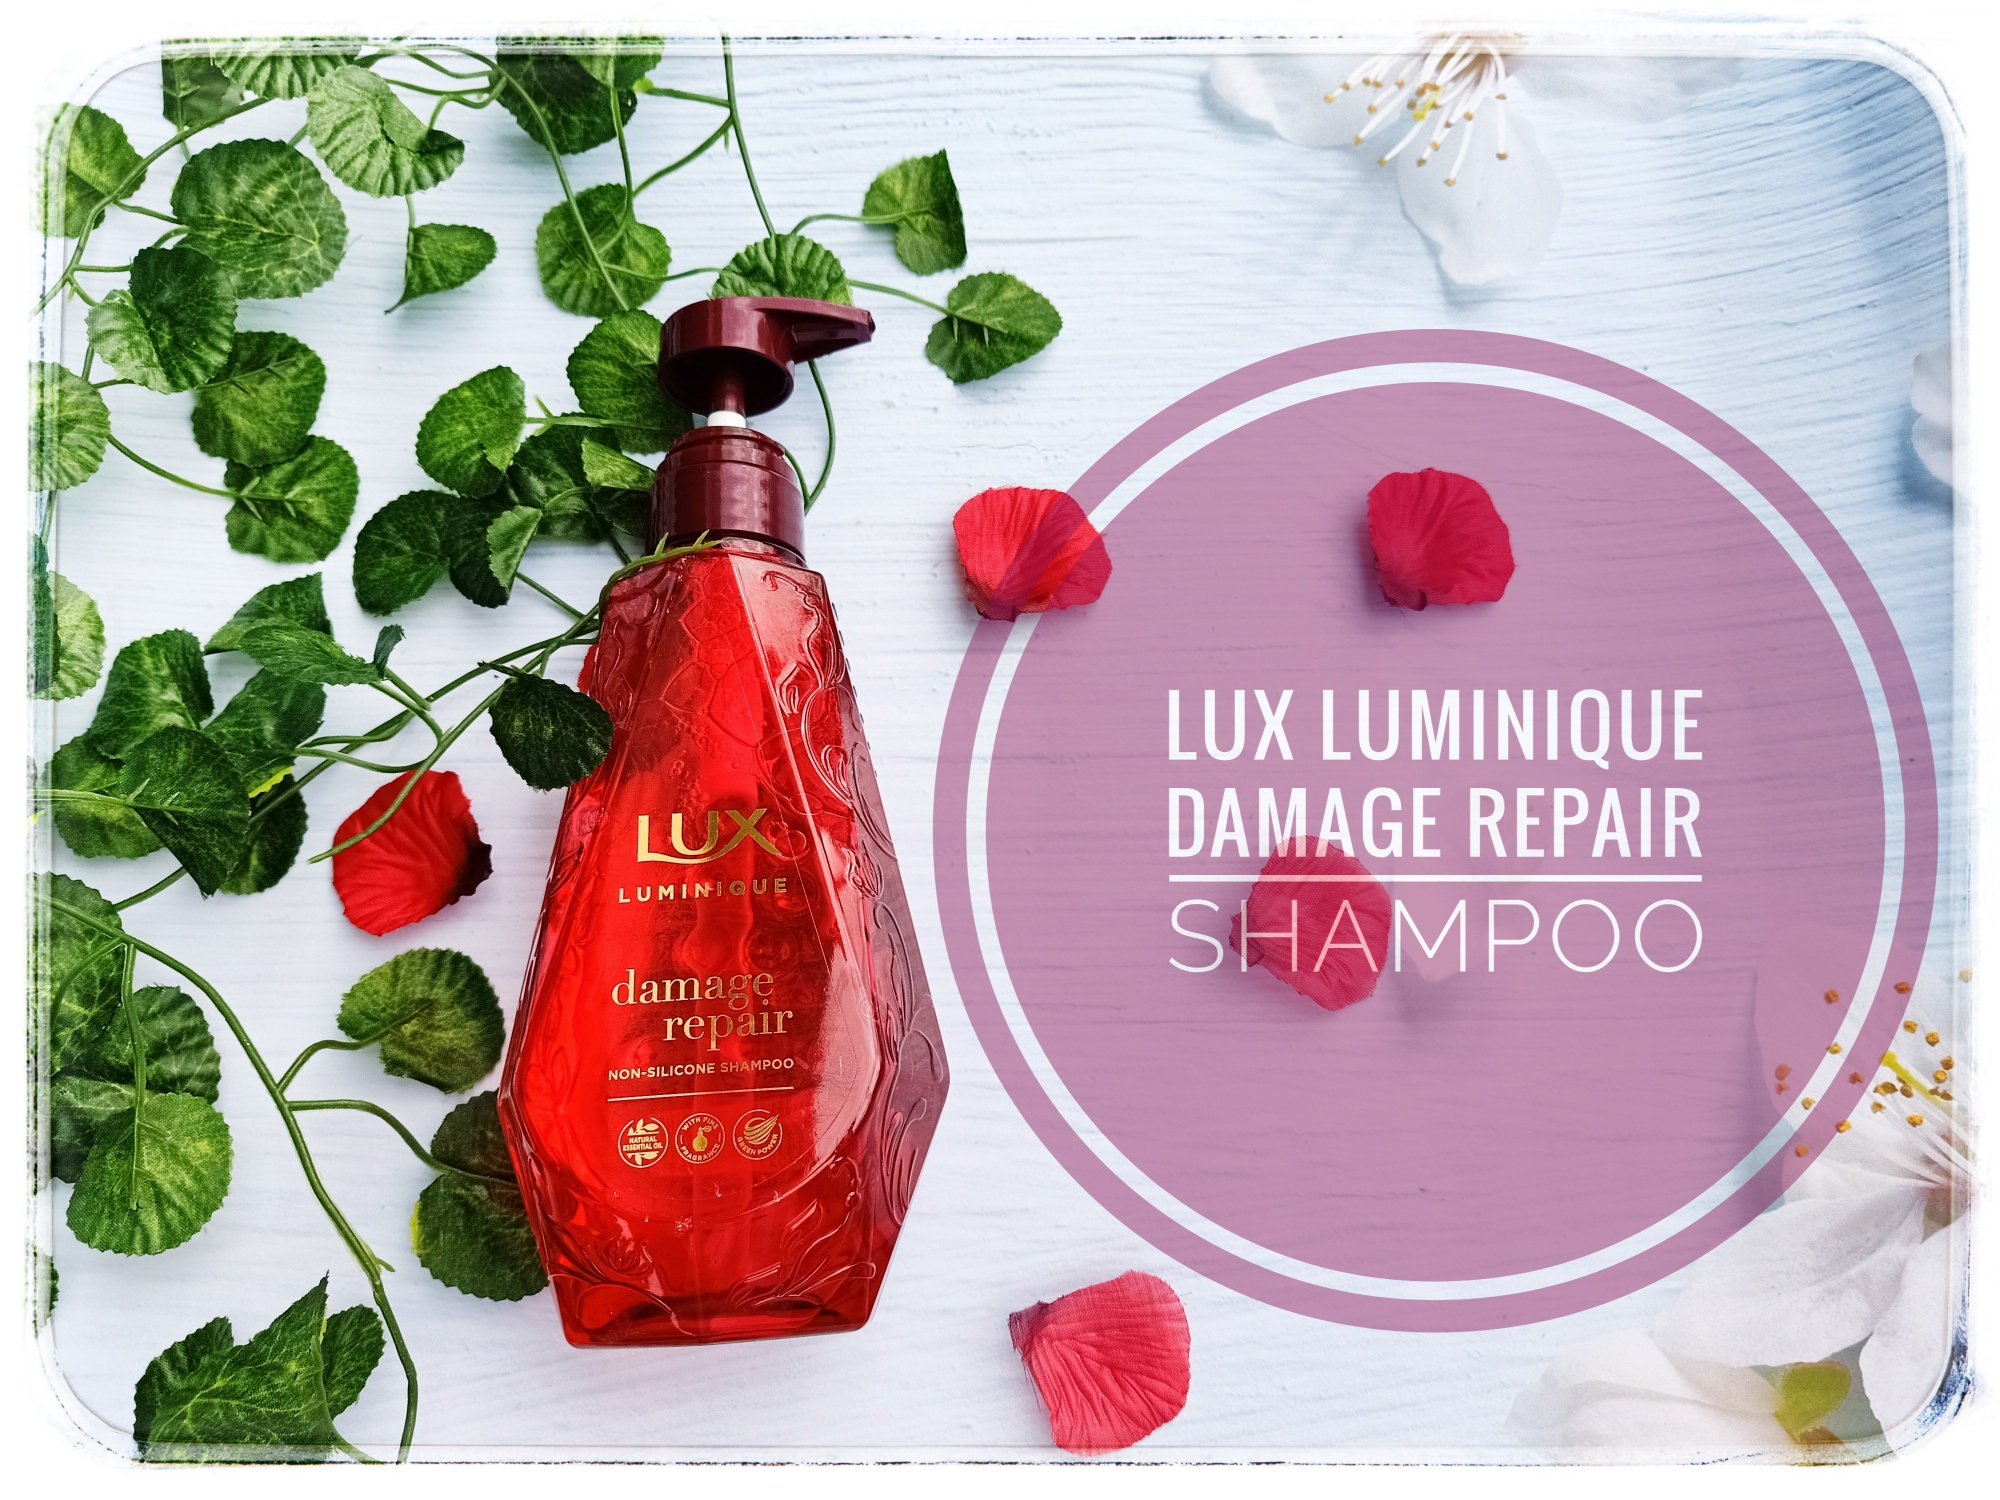 REVIEW | Lux Luminique Damage Repair Non-Silicone Shampoo – Must Try!